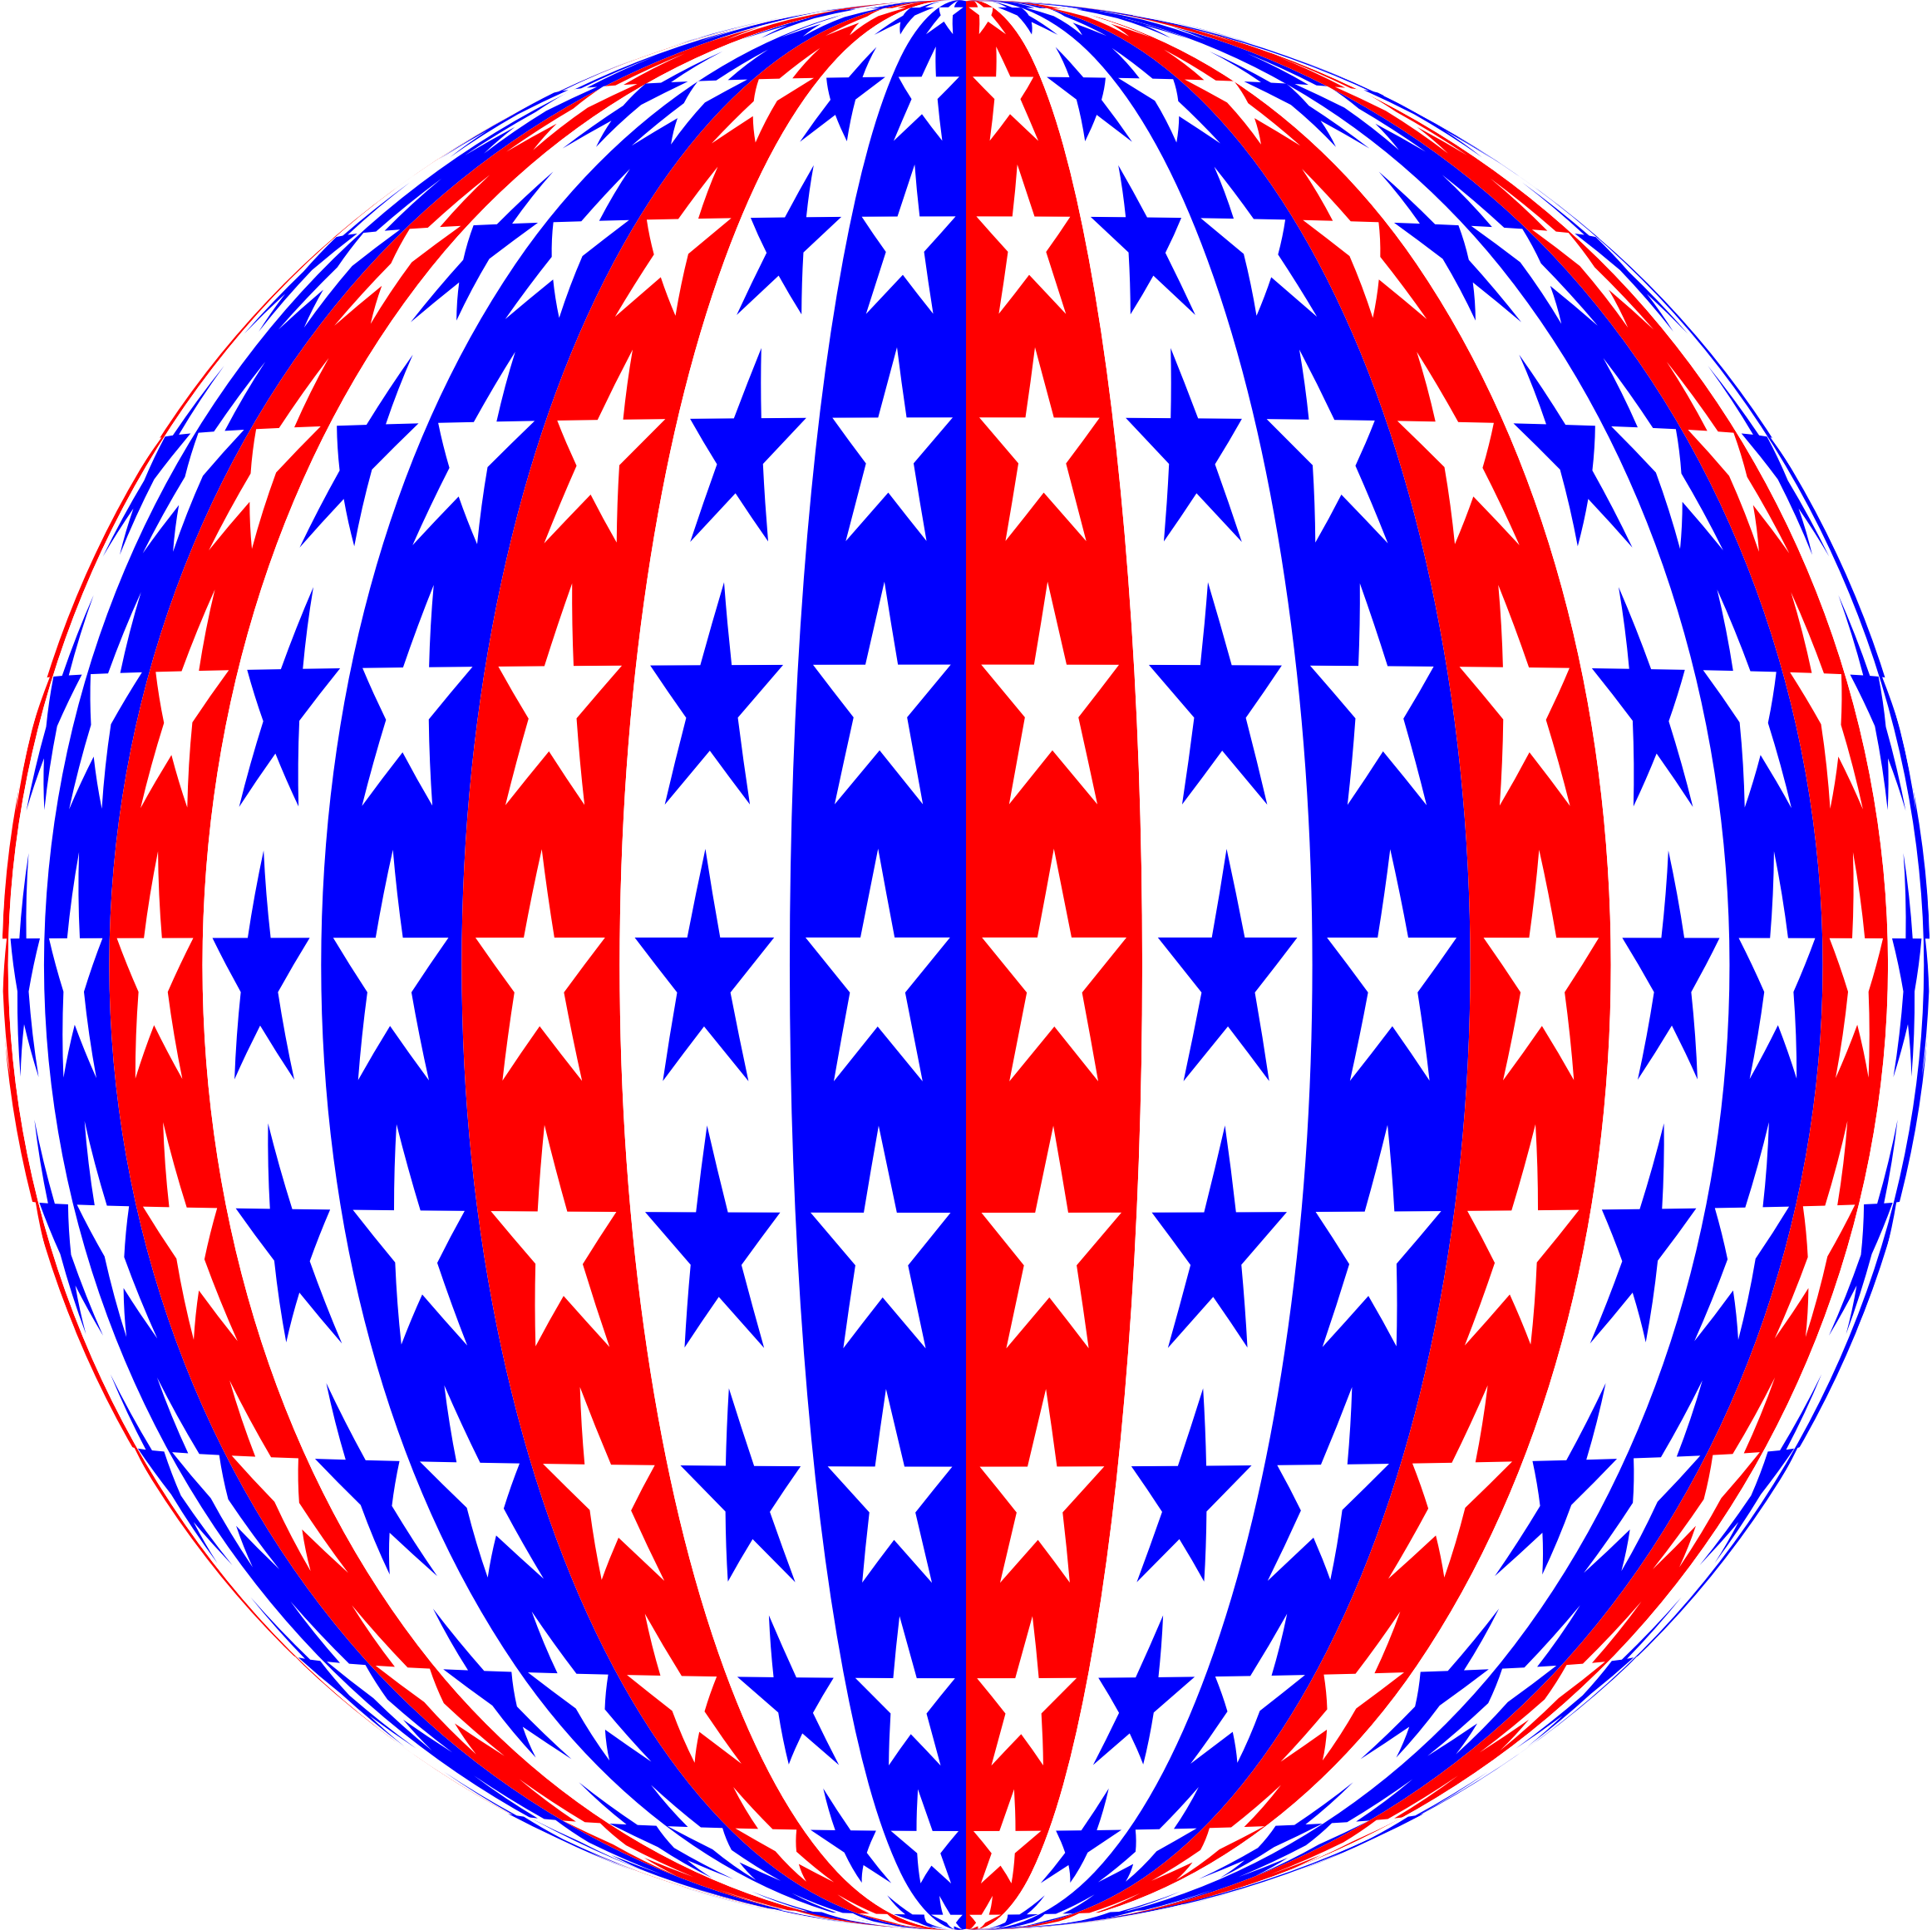 Red White Blue Sphere by GDJ